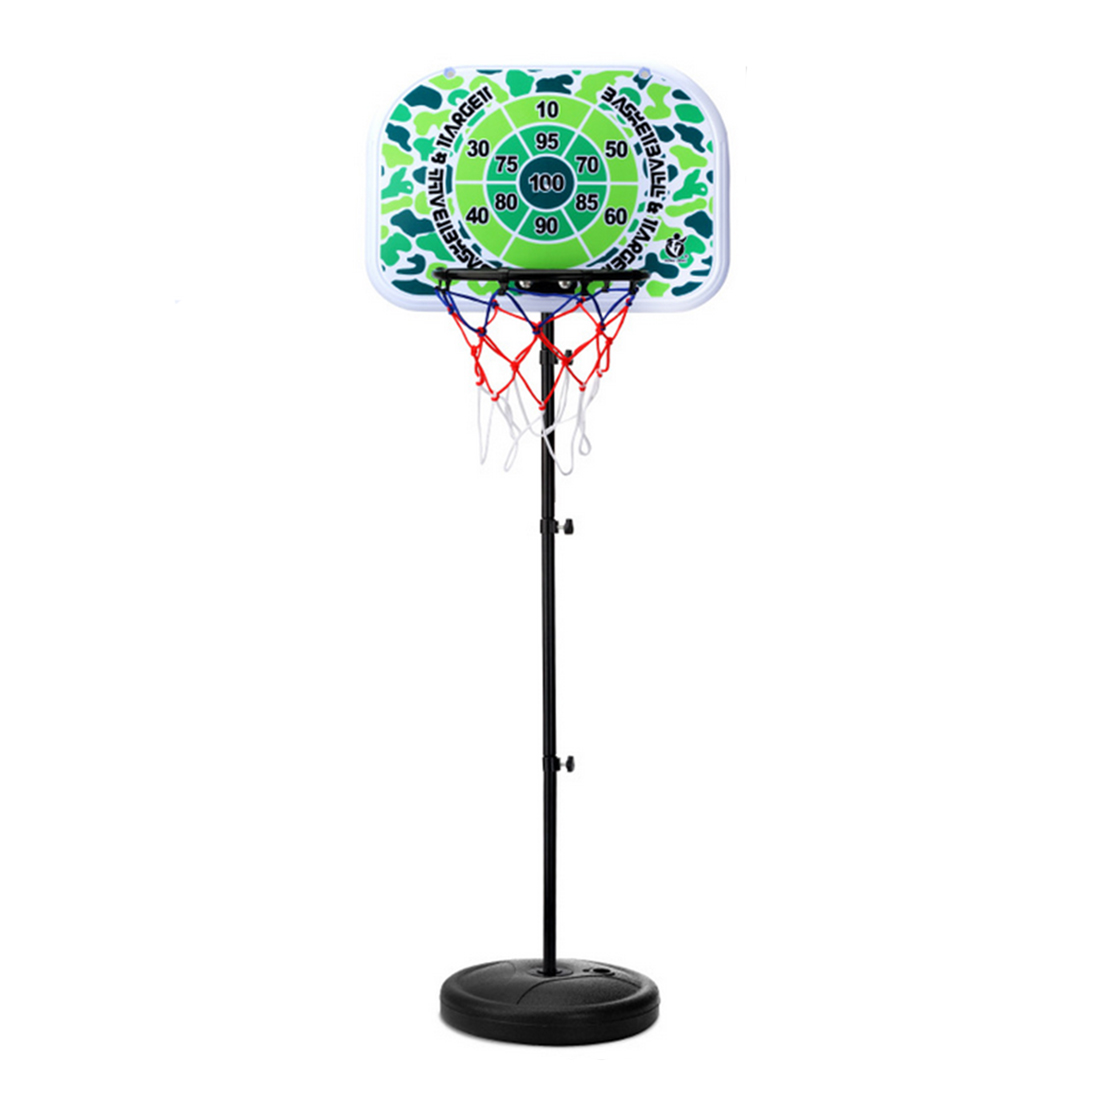 Surwish 2m Adjustable Portable Basketball System Outdoor Fun Sports Toy for Children Camouflage Version